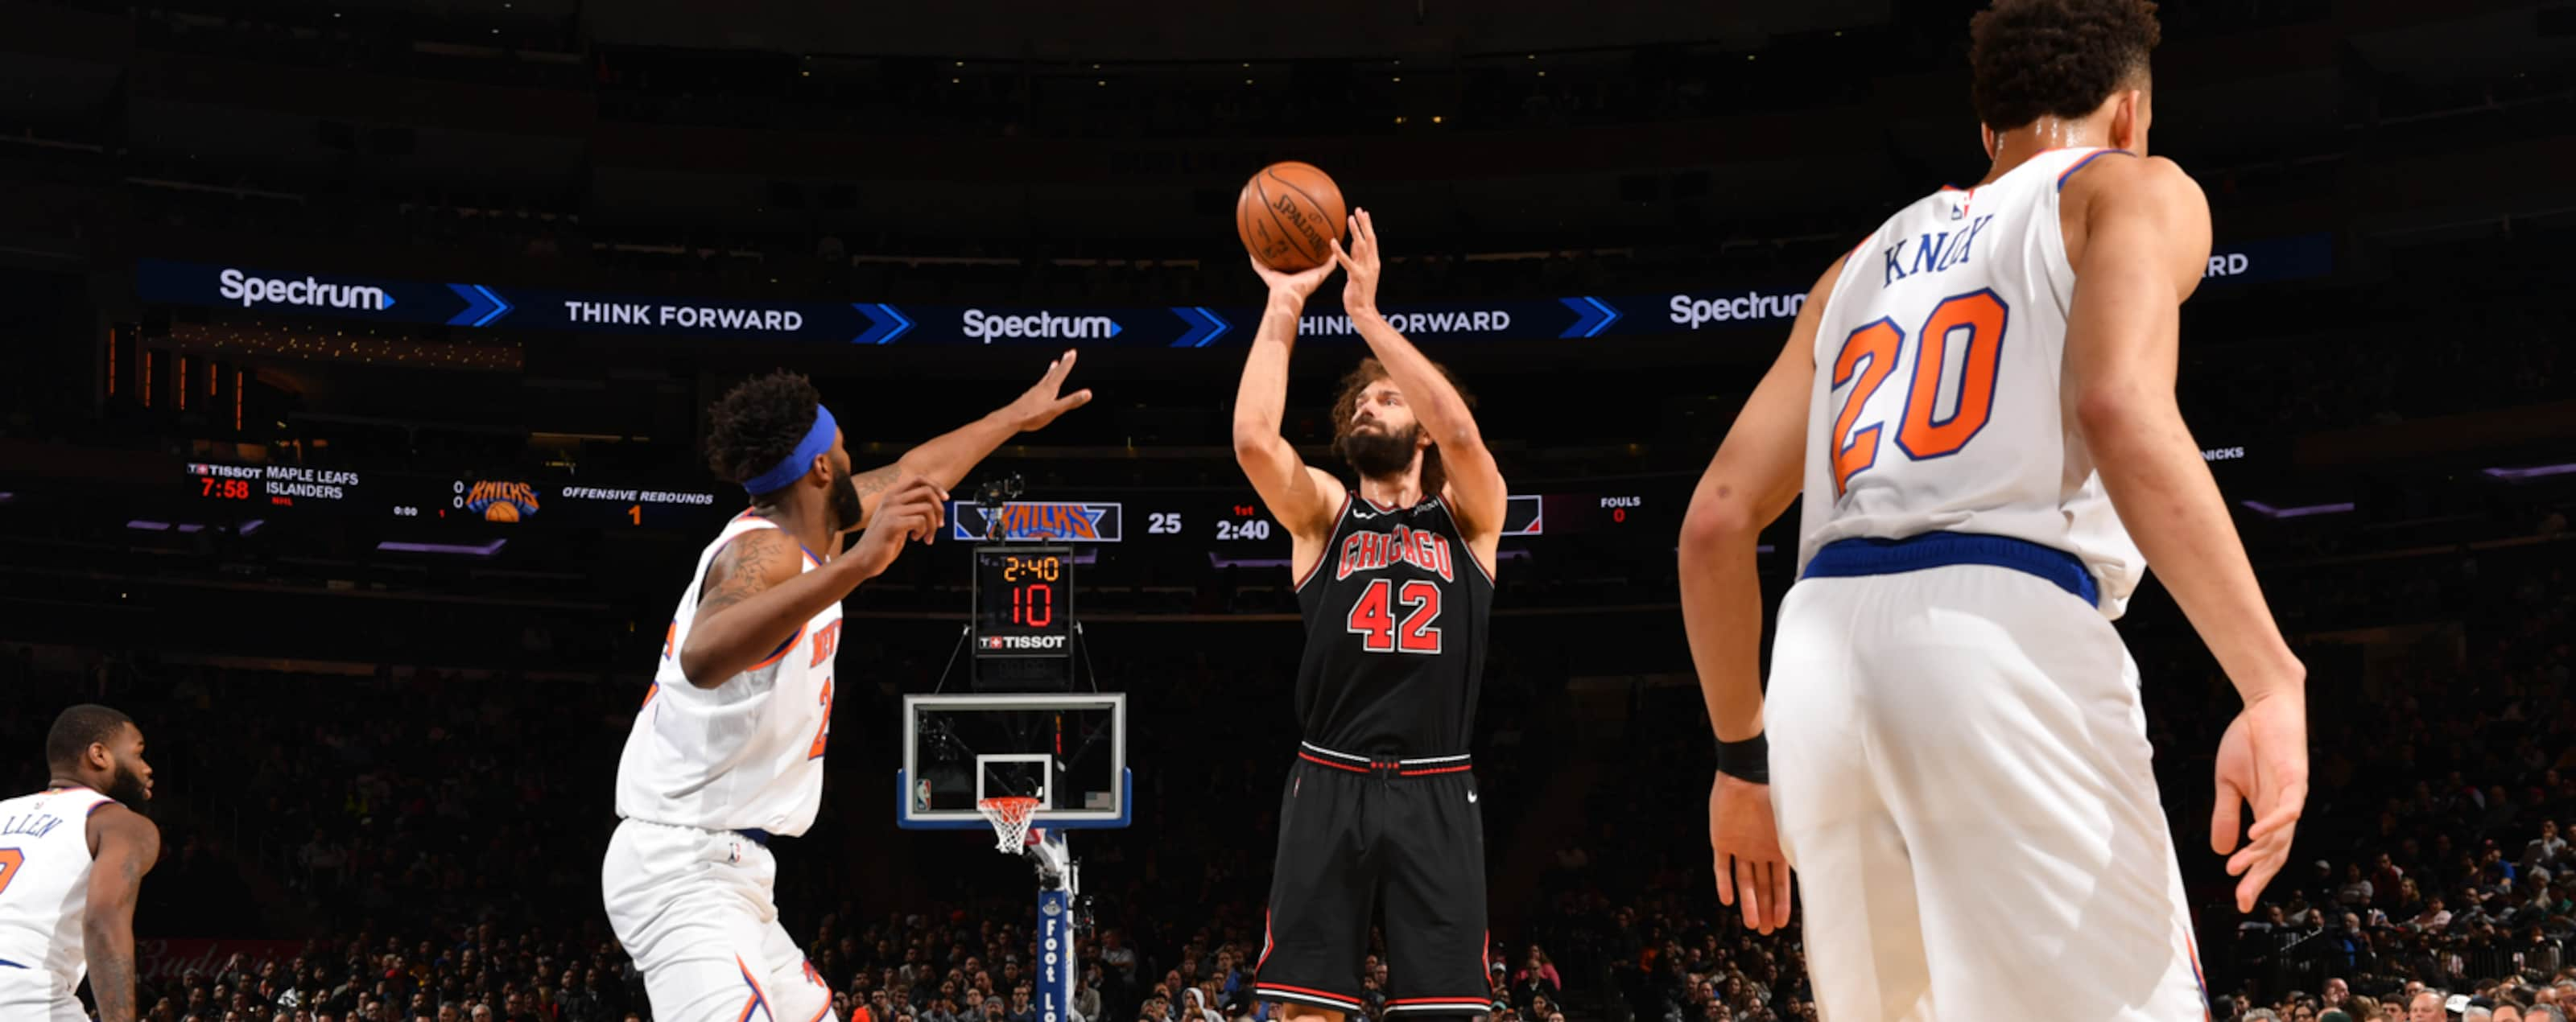 Robin Lopez shoots the ball against the New York Knicks.